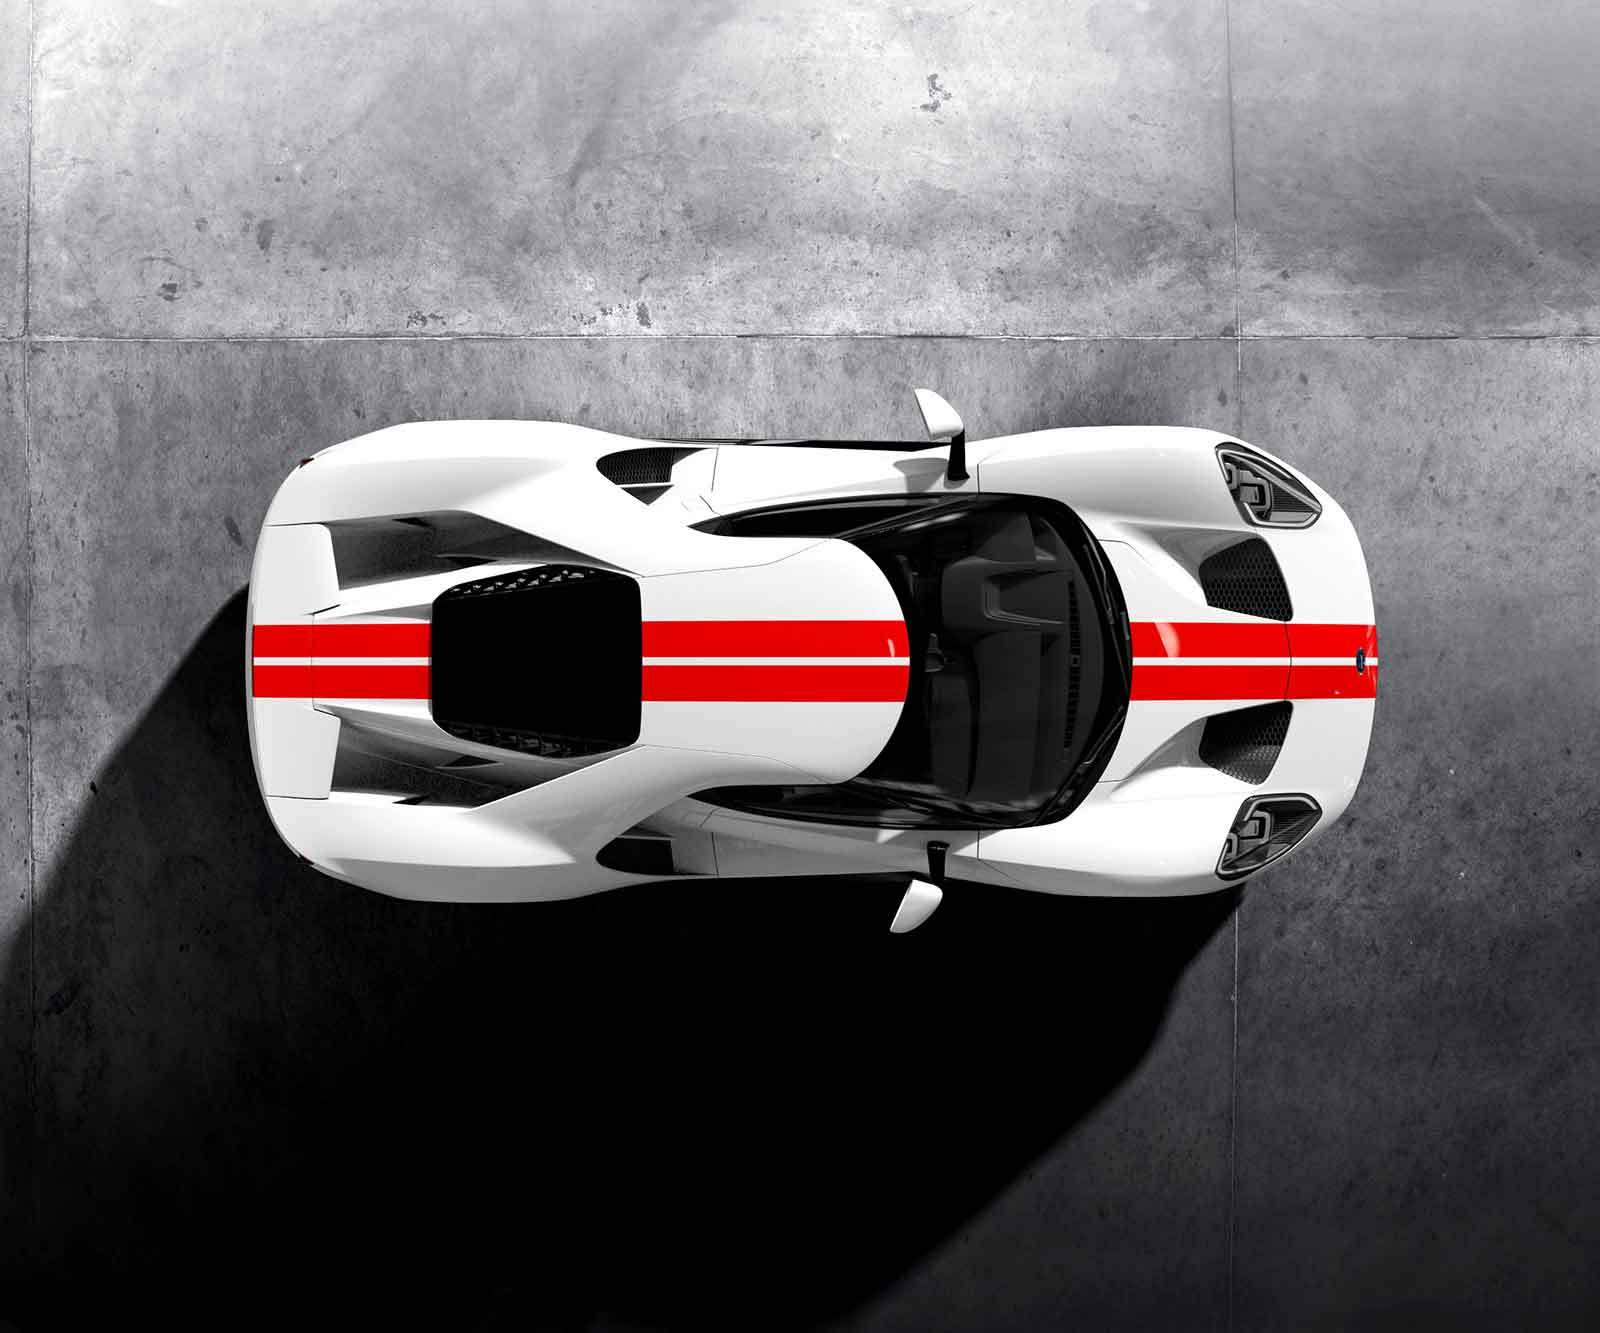 Ford received 6,506 fully completed Ford GT applications from people around the world